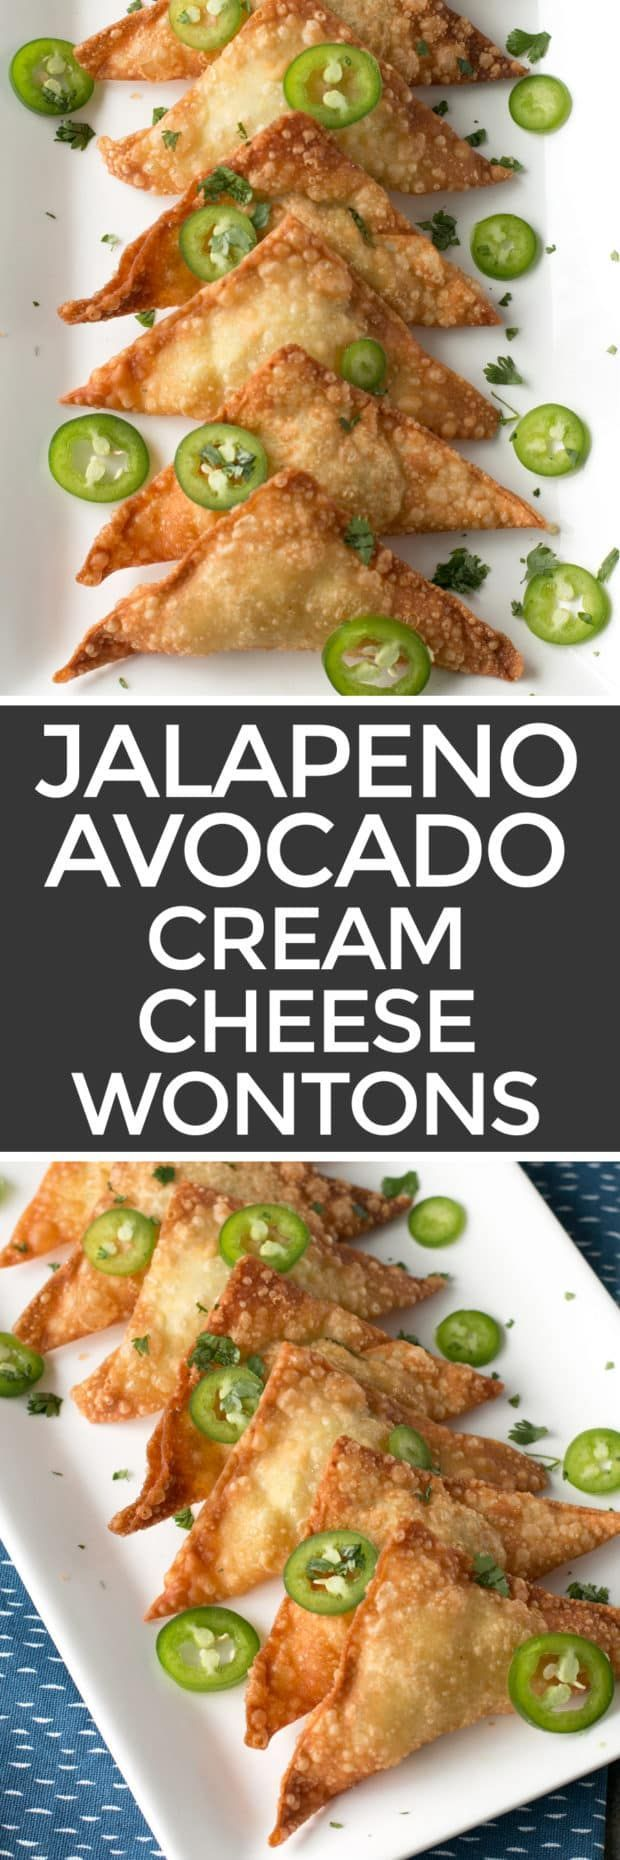 If you love jalapeño poppers, you are going to flip out over these Jalapeño Avocado Cream Cheese Wontons! The creamy and spicy filling wrapped in crispy wonton wrappers makes these poppers a fantastic party appetizer (or afternoon snack...). Jalapeño Avoc